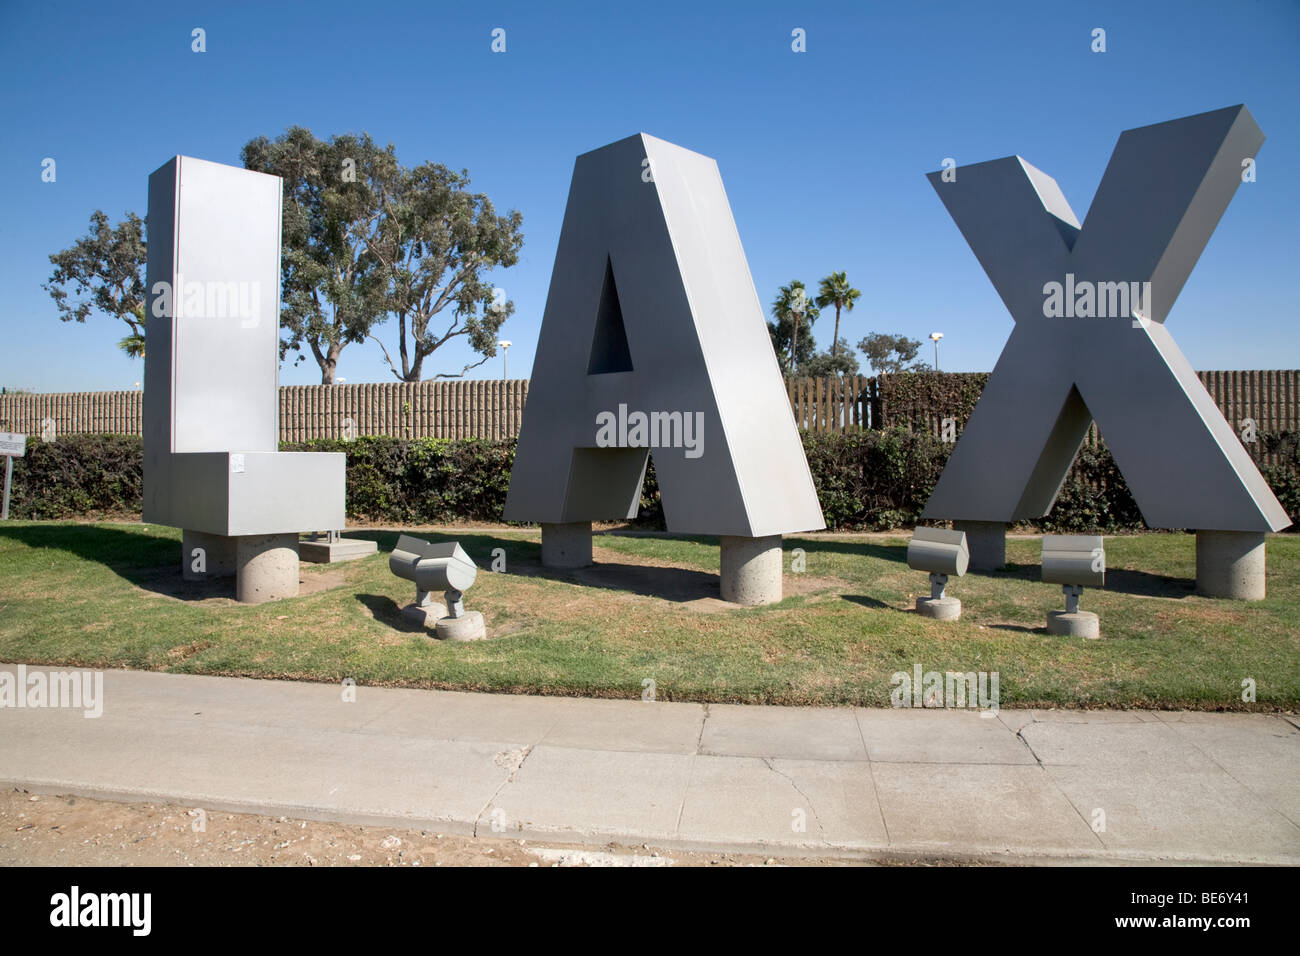 LAX Airport Sign Los Angeles - Stock Image